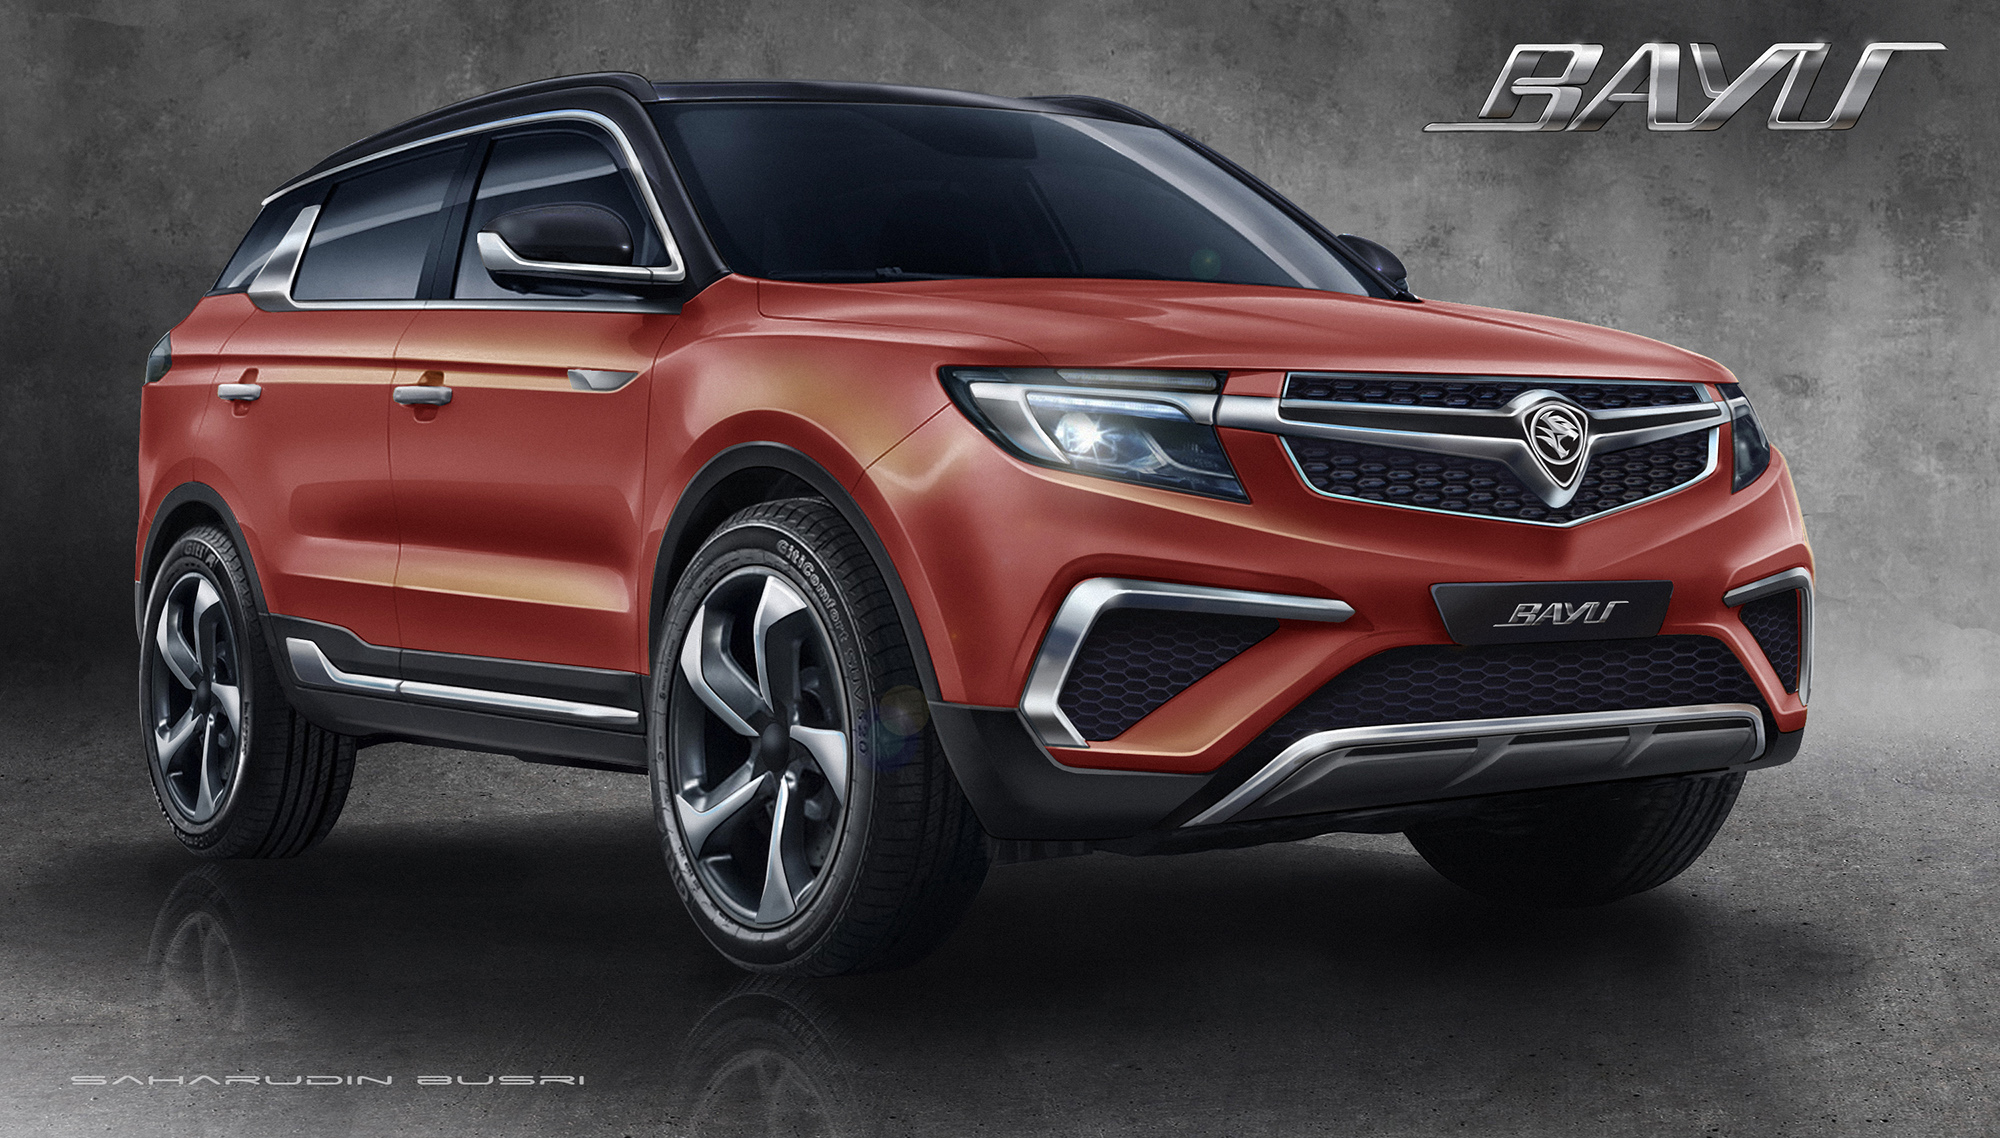 proton new car releaseProton Bayu  a Geelybased SUV design by MIMOS